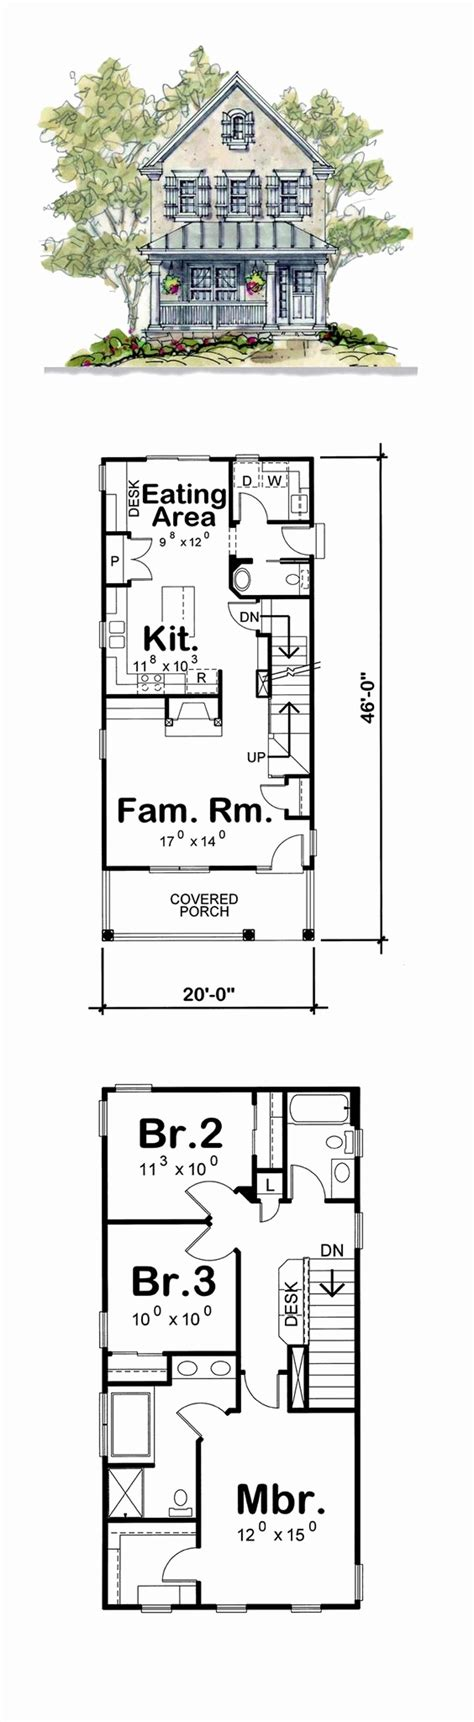 narrow lot 2 story house plans inspirational two story house plans for shallow lots